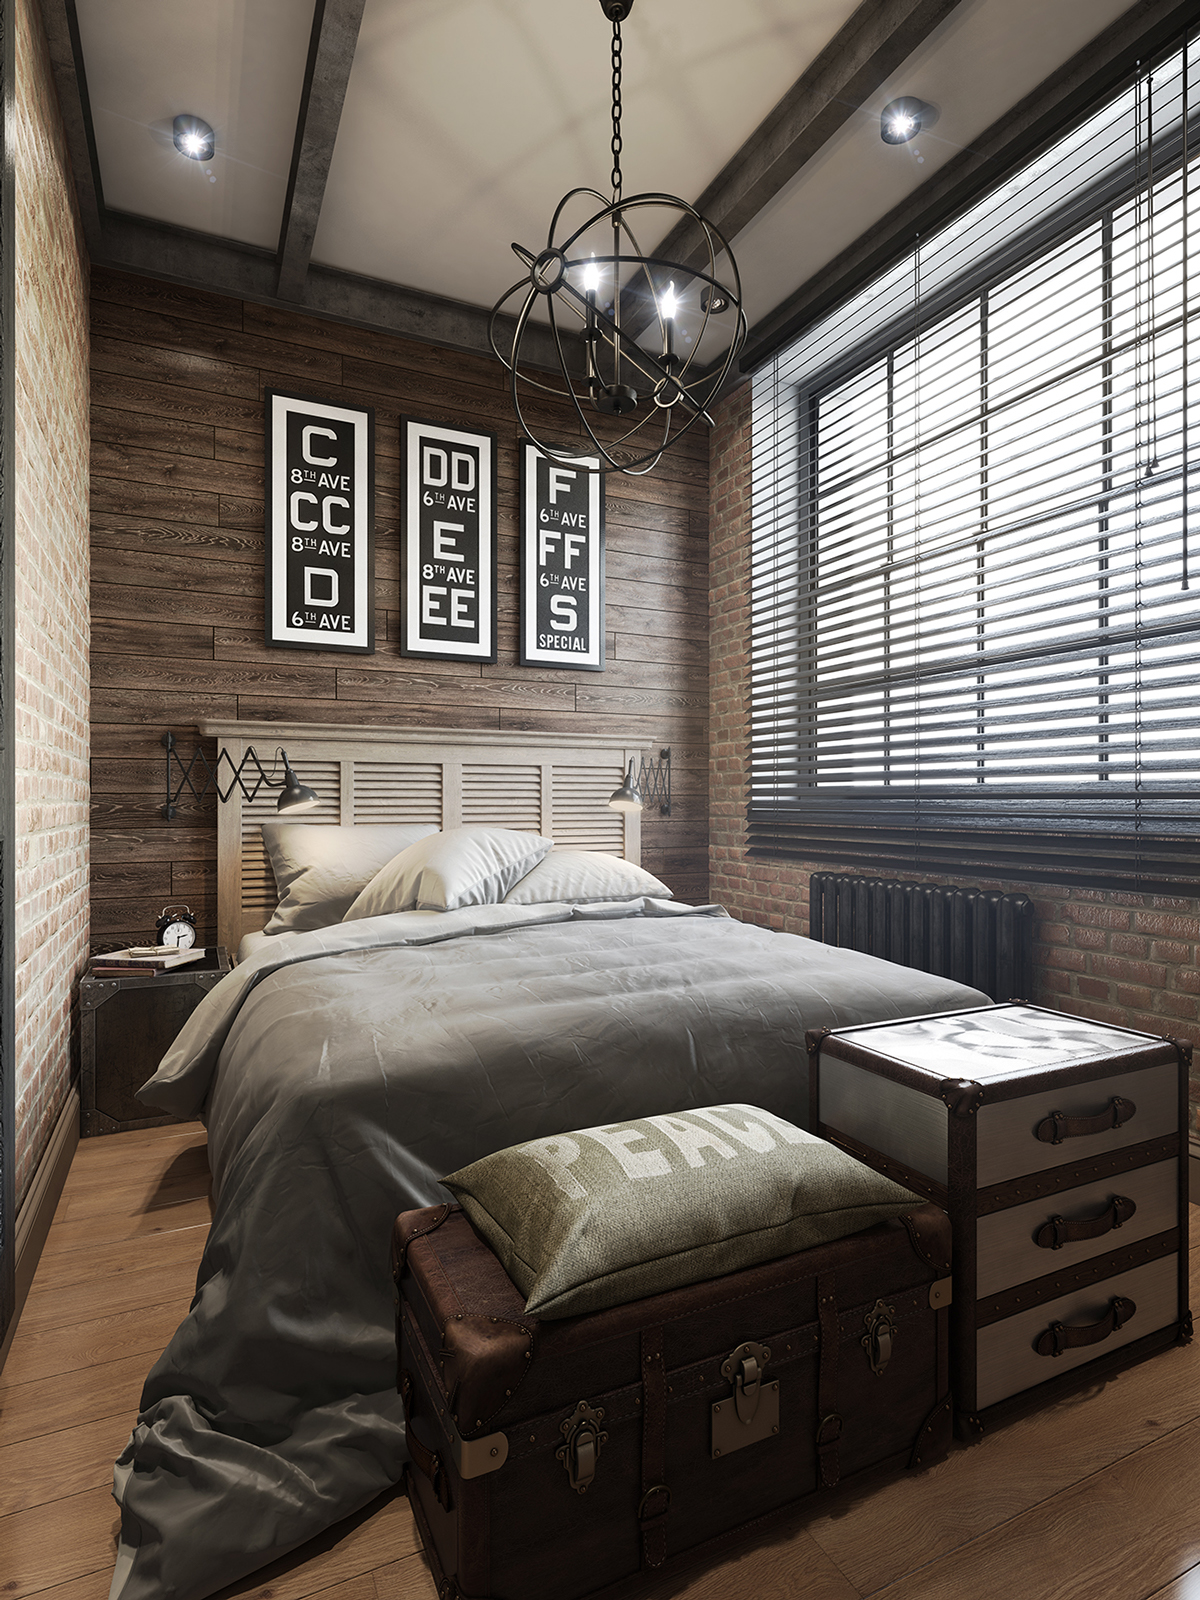 Ideas For Rooms With Wood Paneling: Three Dark Colored Loft Apartments With Exposed Brick Walls